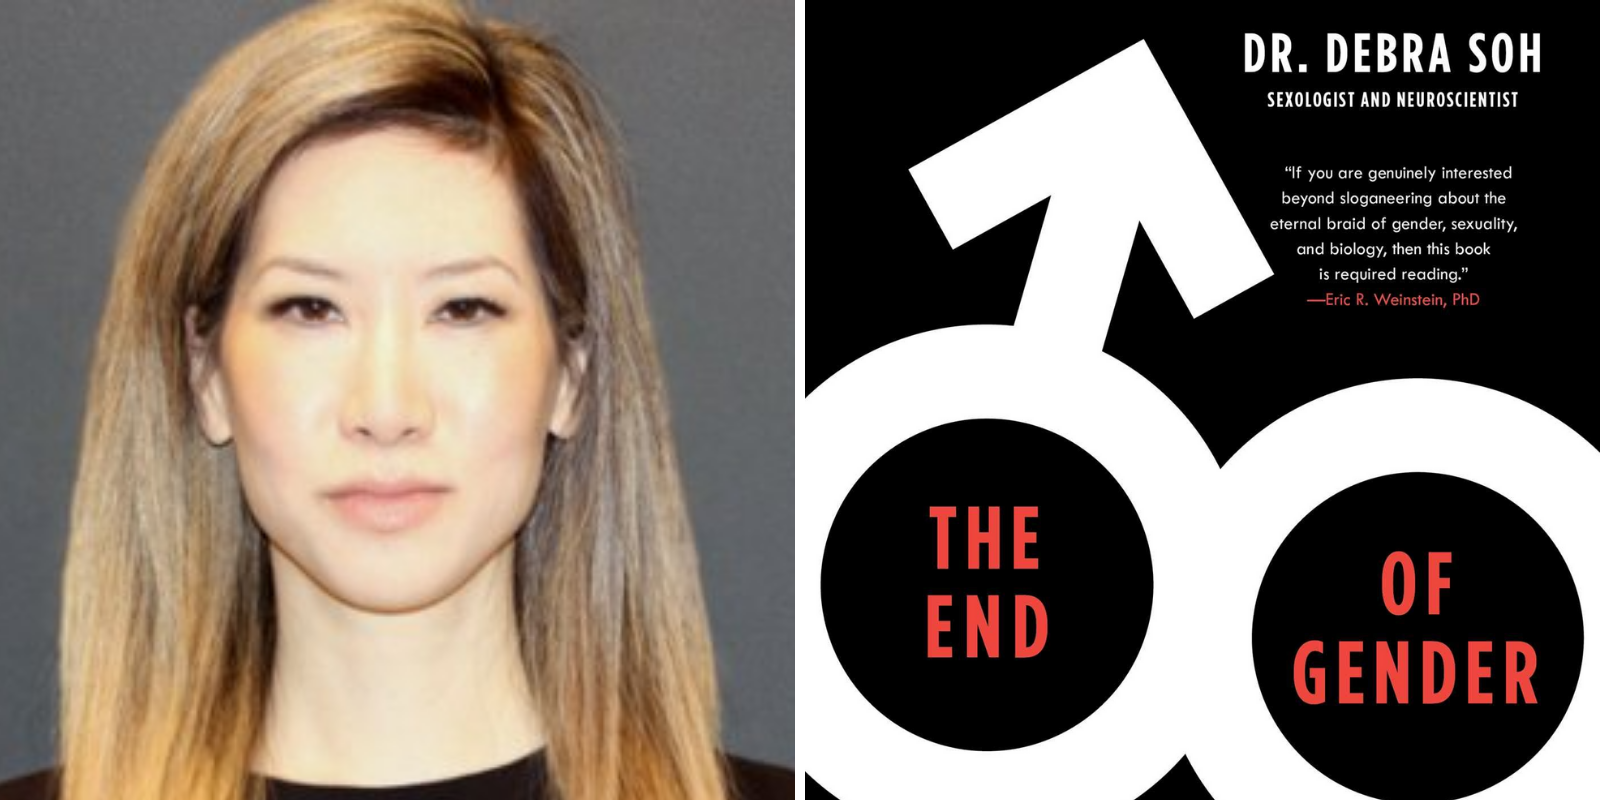 REVIEW: The End of Gender by Debra Soh